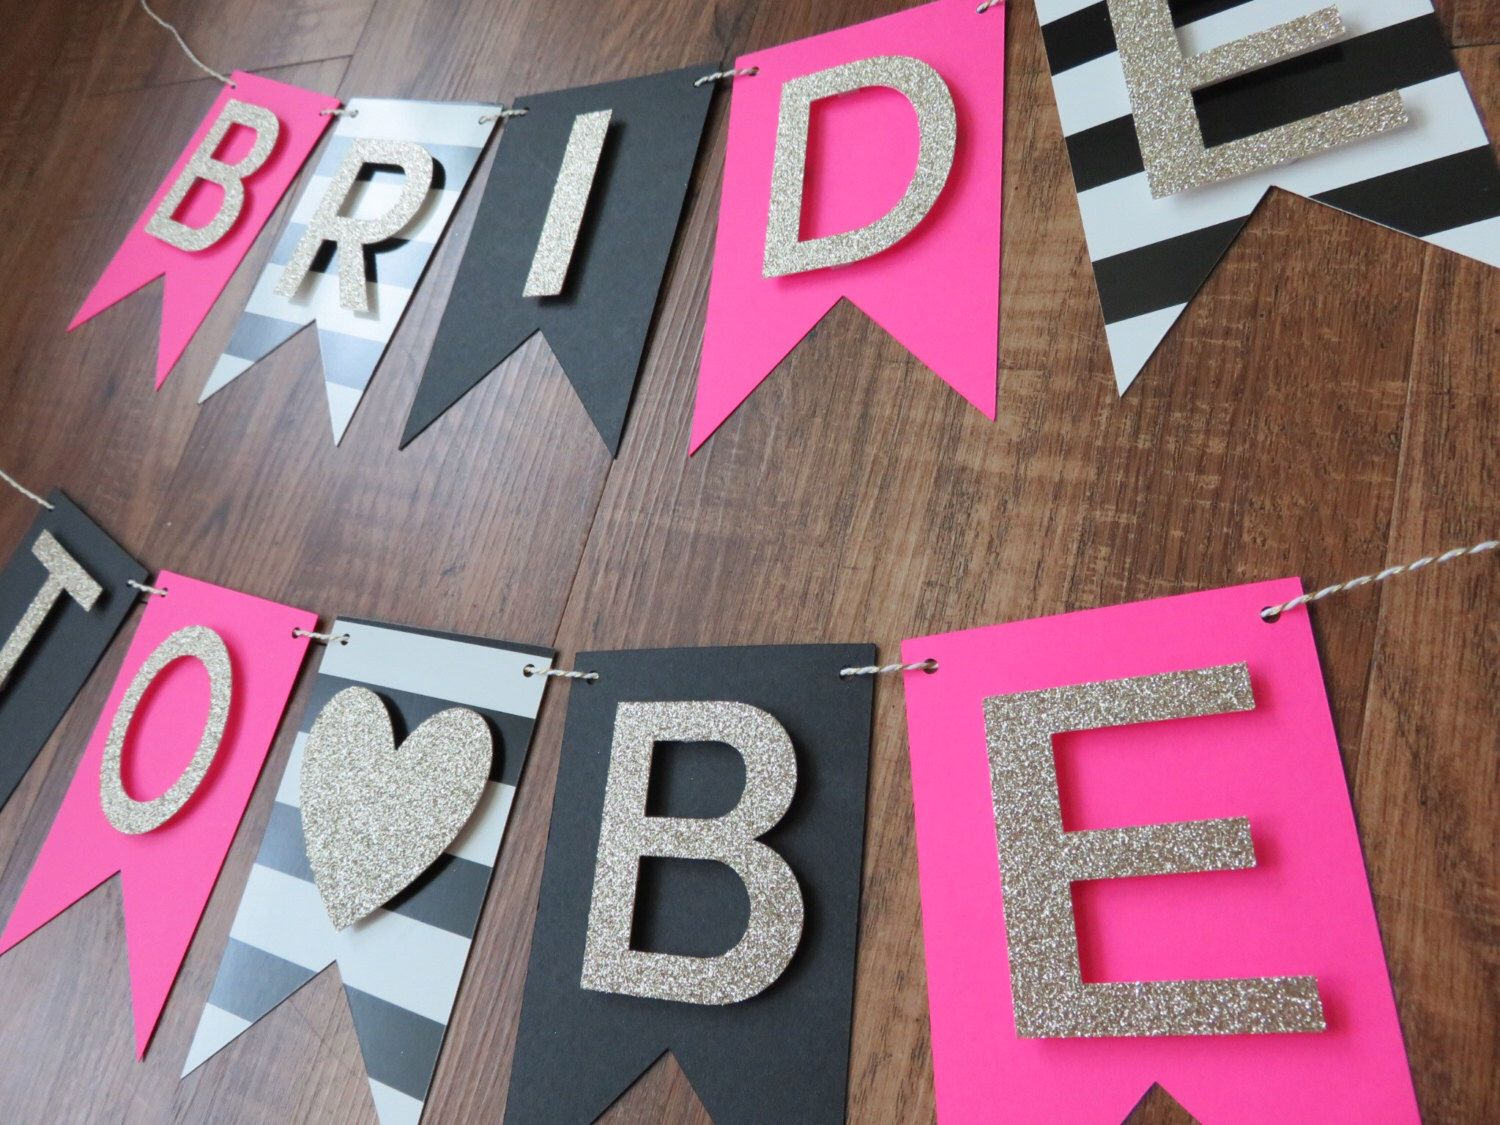 Kate Spade Party Theme Bride To Be Banner Pink Gold Black Partybridal Shower